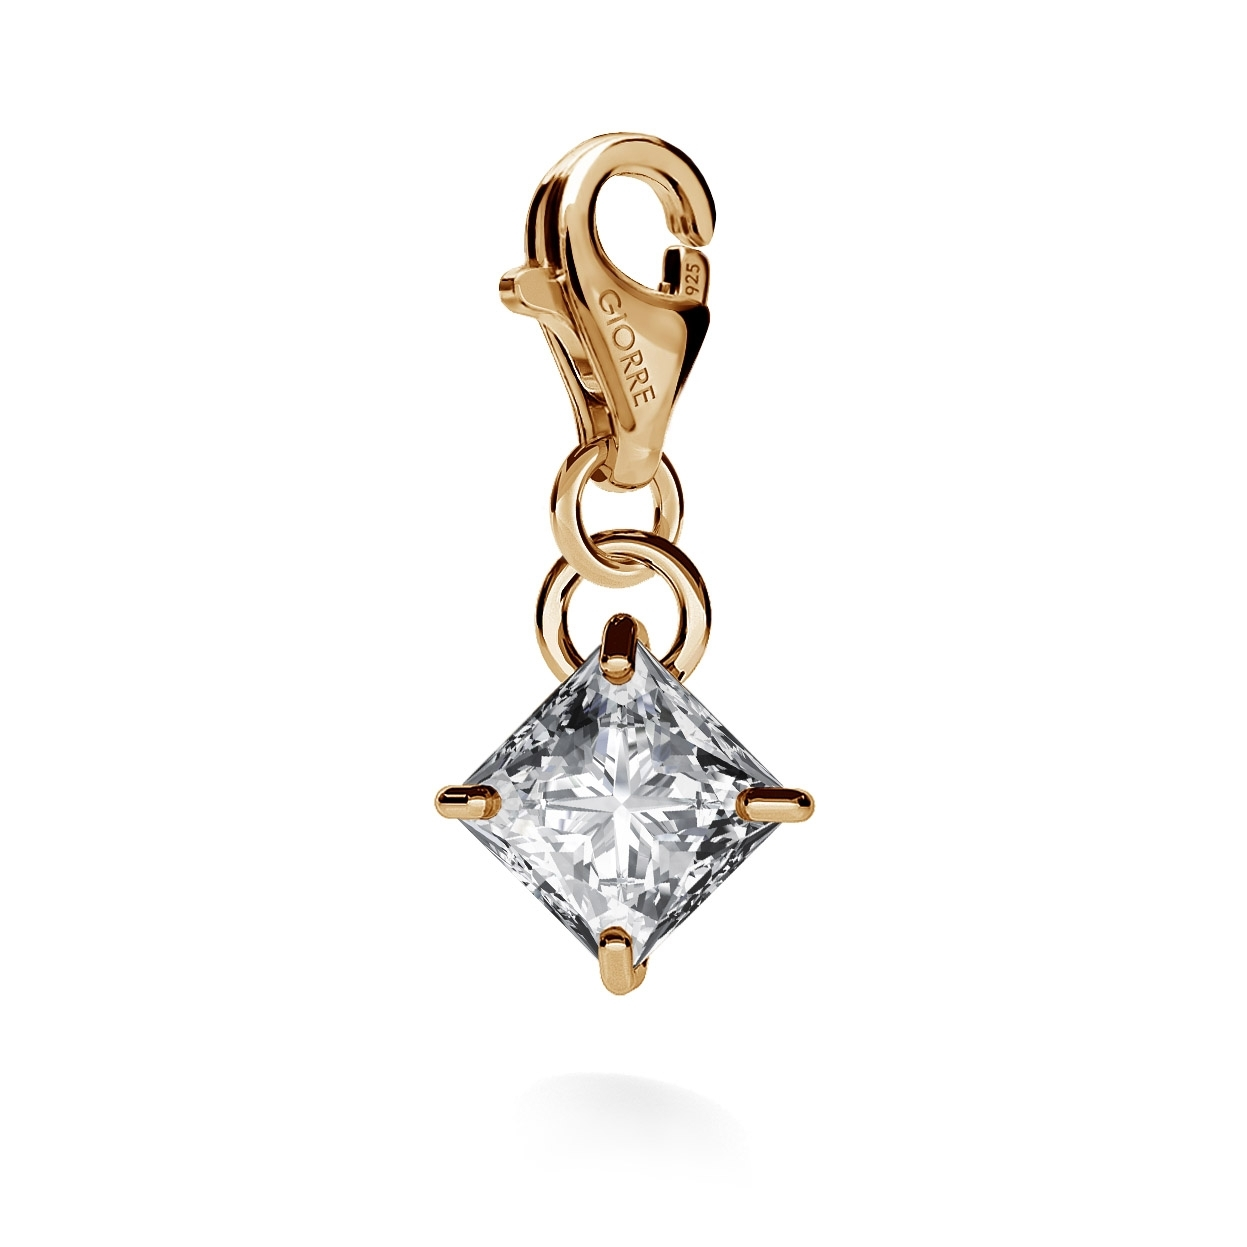 CHARM 97, SWAROVSKI ZIRCONIA, RHODIUM OR GOLD PLATED